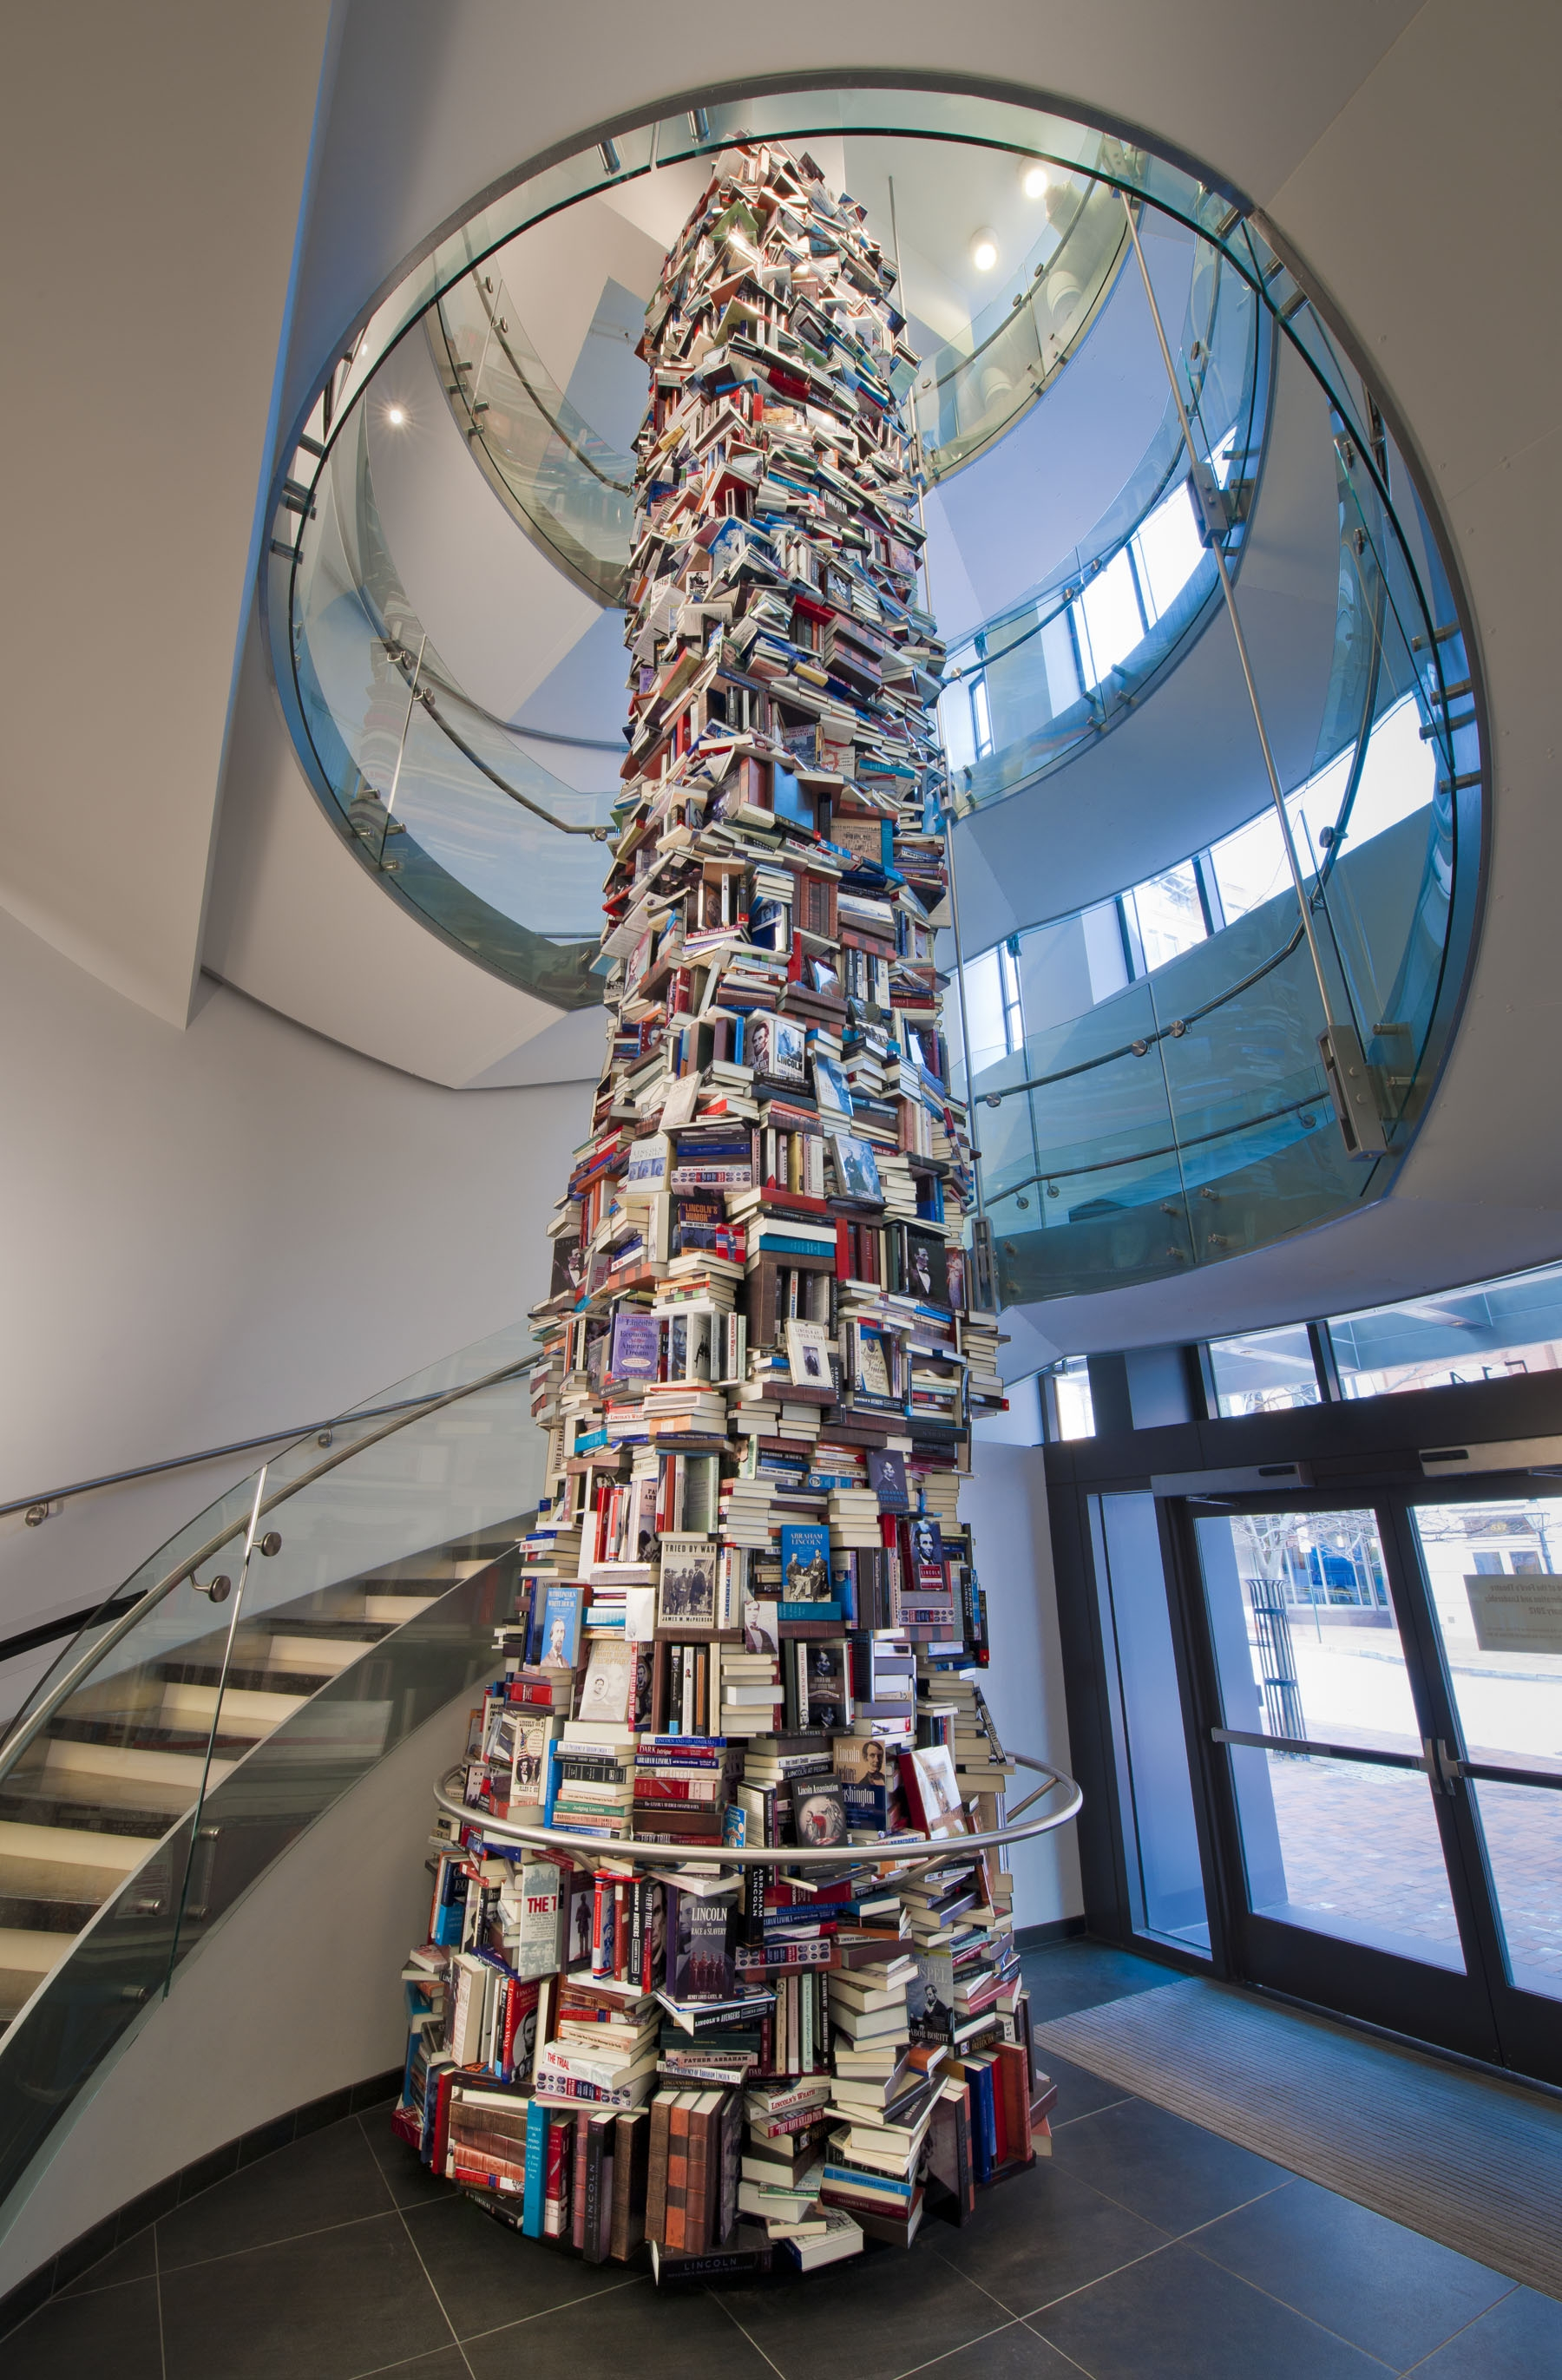 a 34ft tower of books about Abraham Lincoln is pictured here. The painted aluminium book jackets surround a structural column and reach from floor to ceiling in the Ford's Center for Education atrium